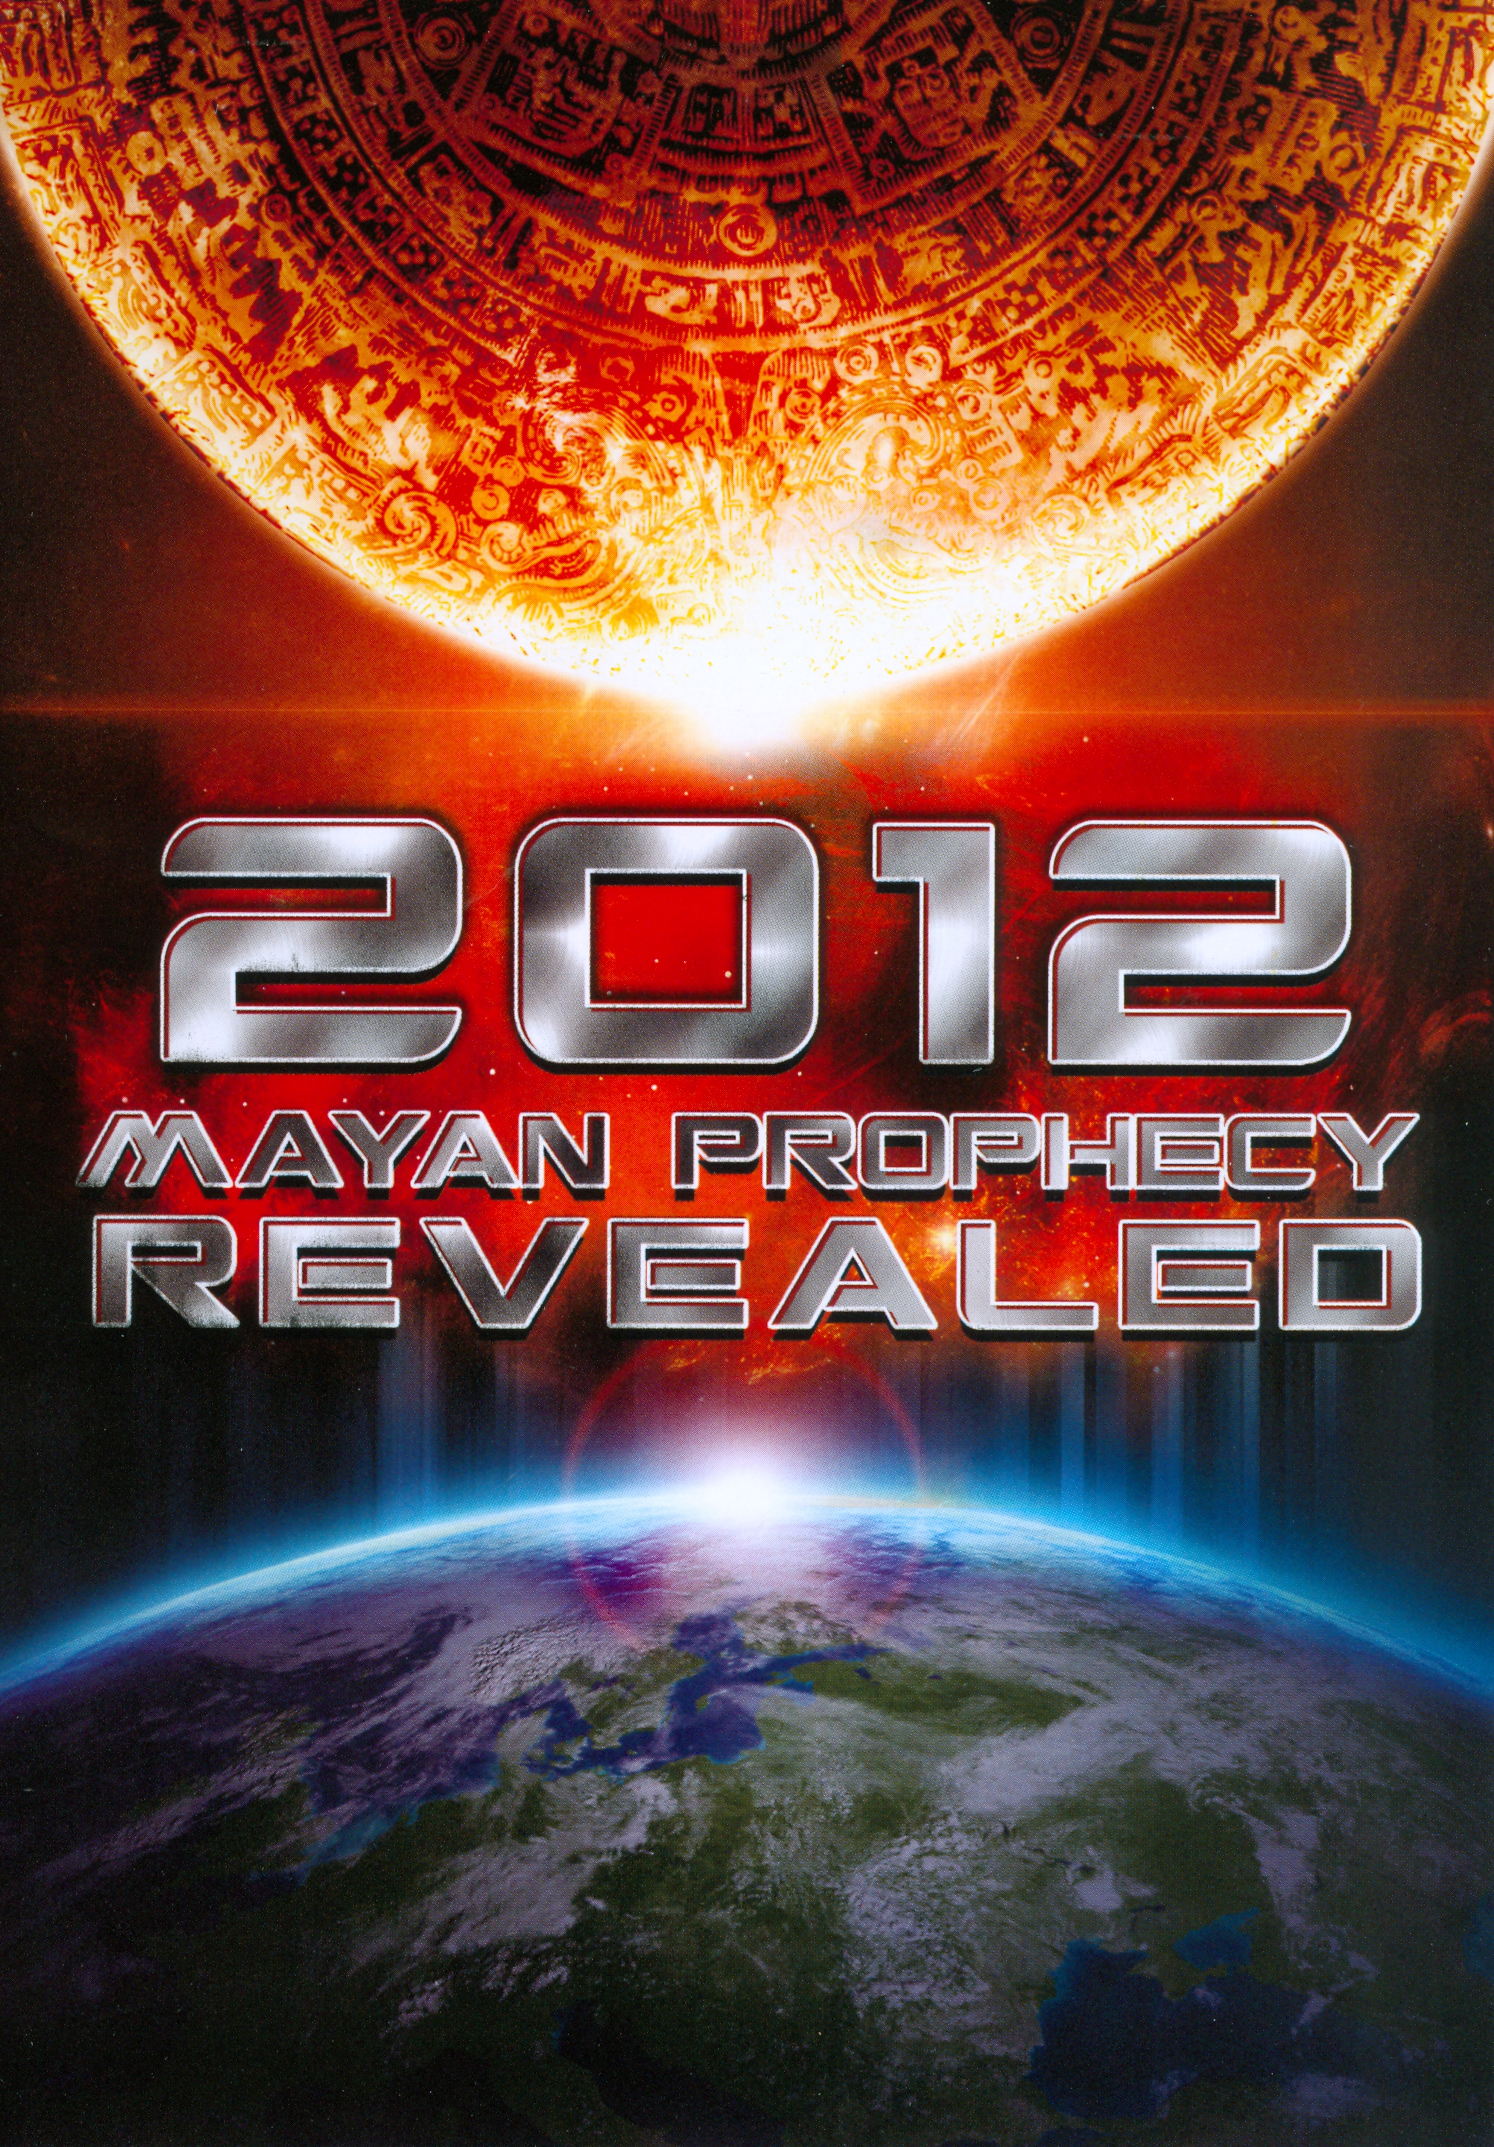 2012 Mayan Prophecy Revealed